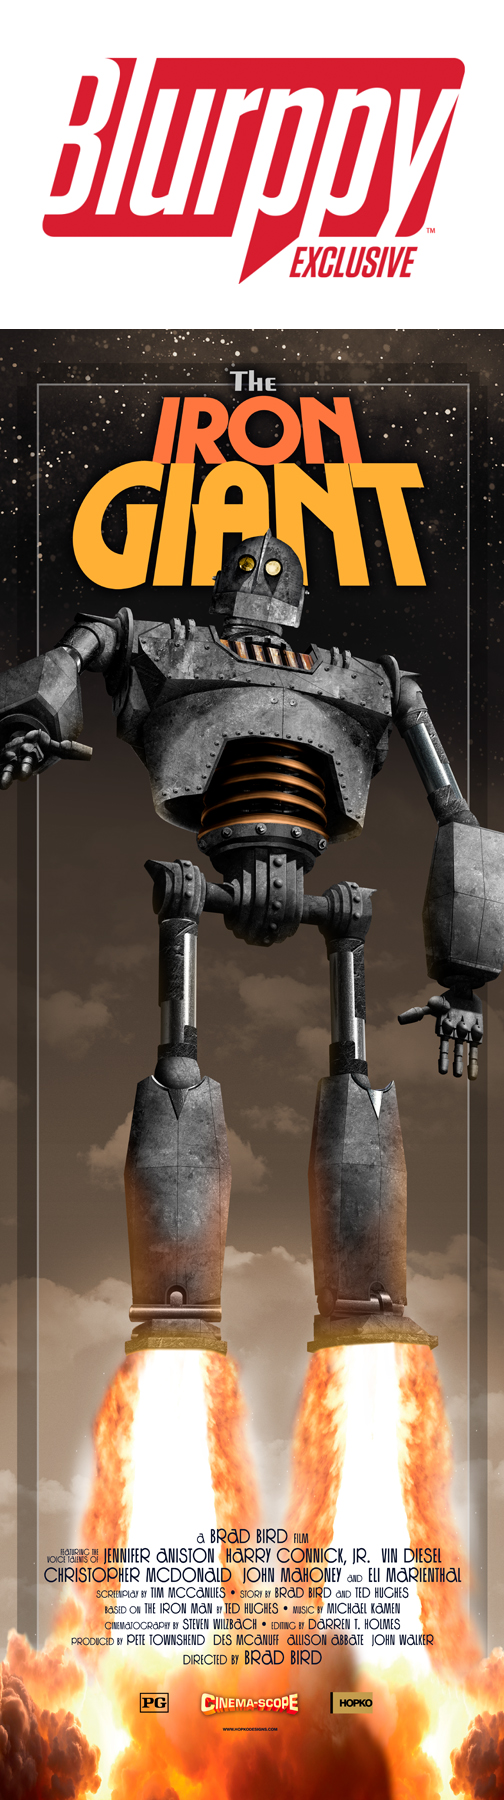 The Iron Giant (Blurrpy Exl) 72 dpi